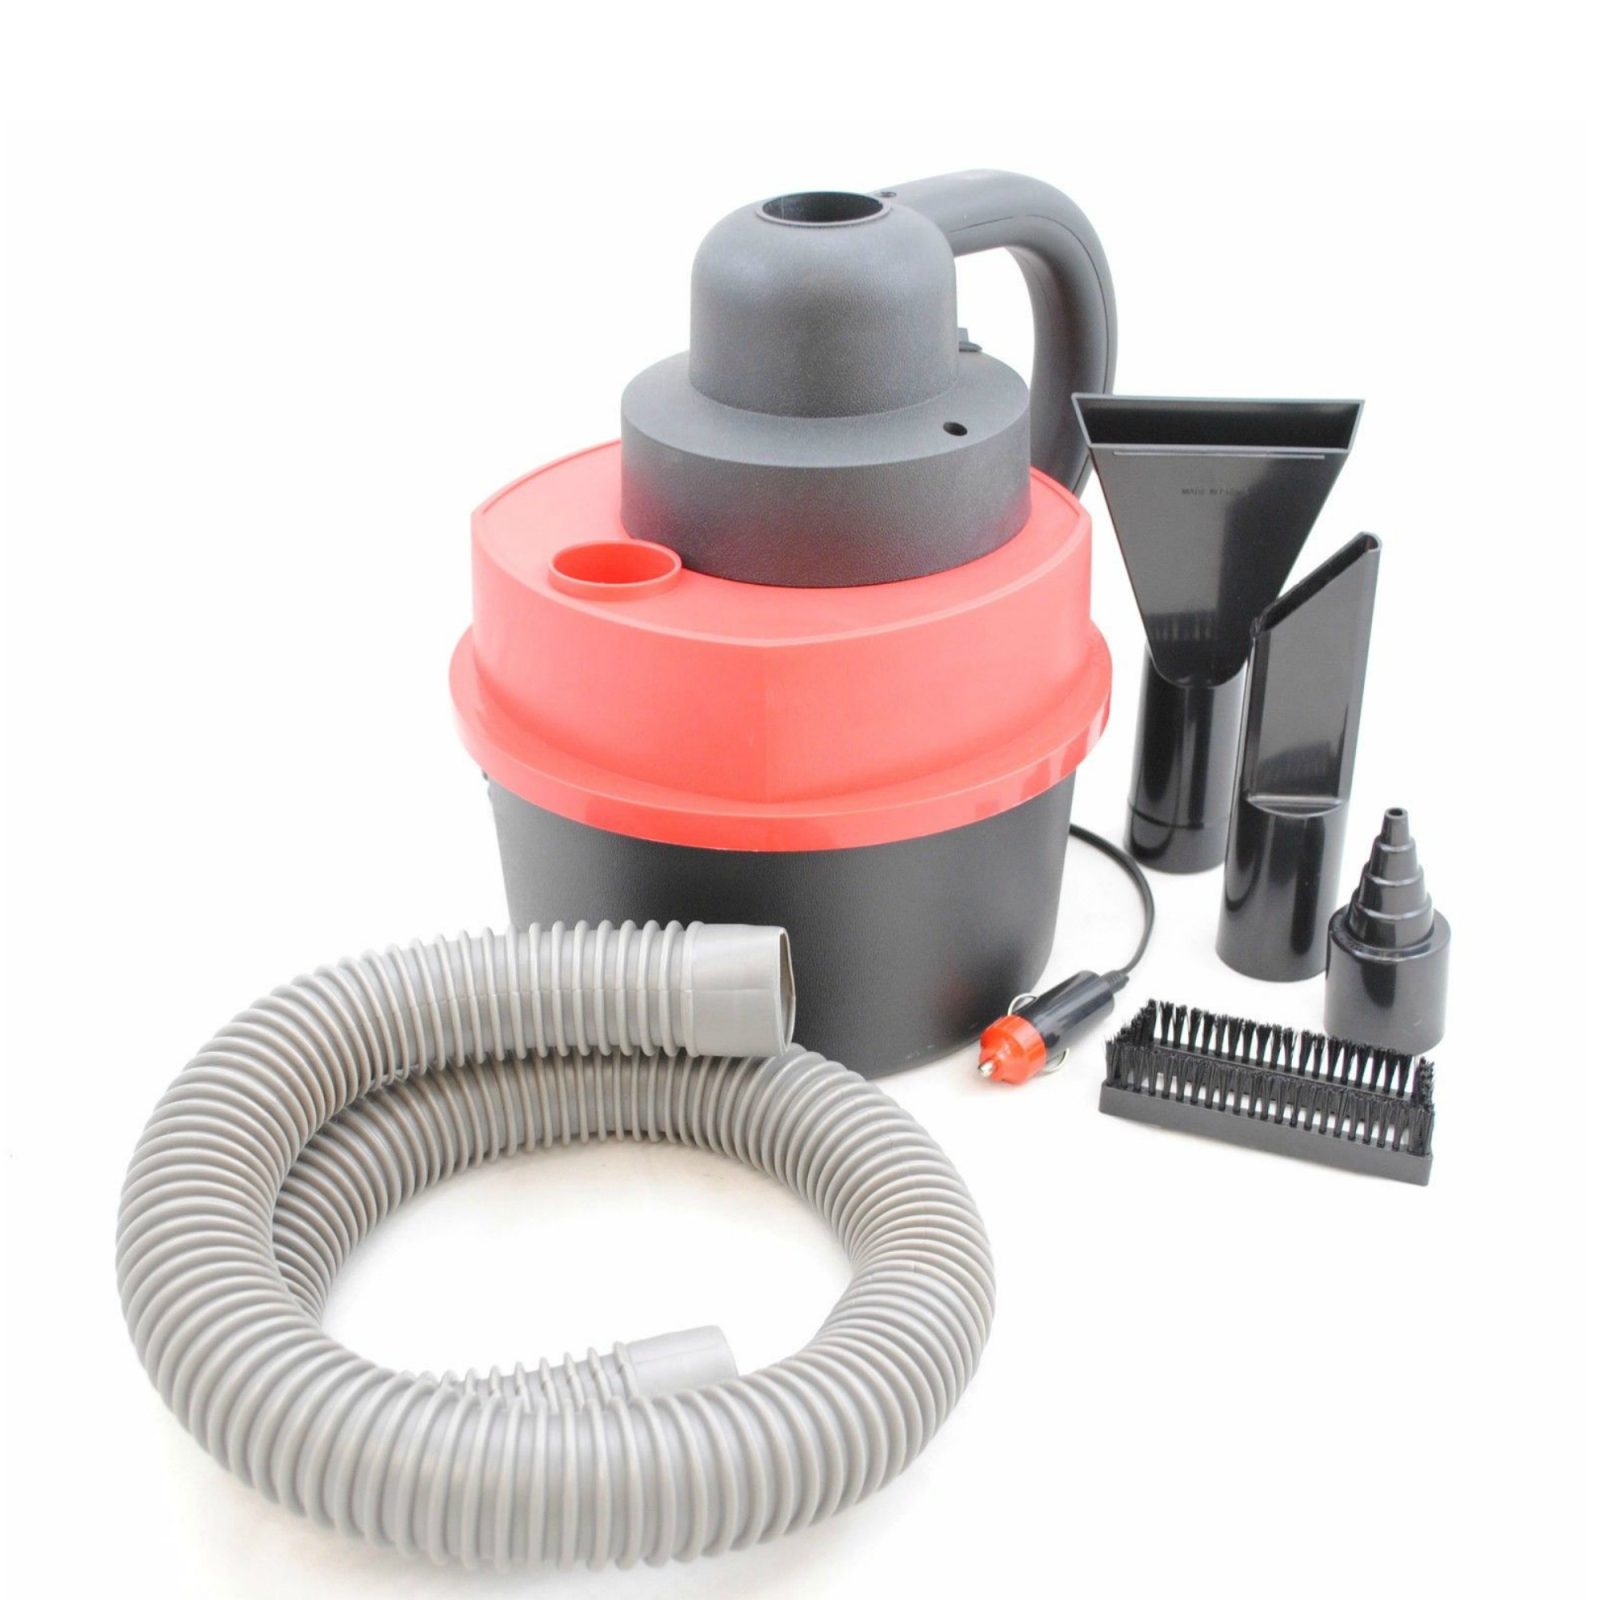 12V Wet Dry Vacuum Cleaner Portable Hand Held Car or Shop Vac with Inflator by Archstone